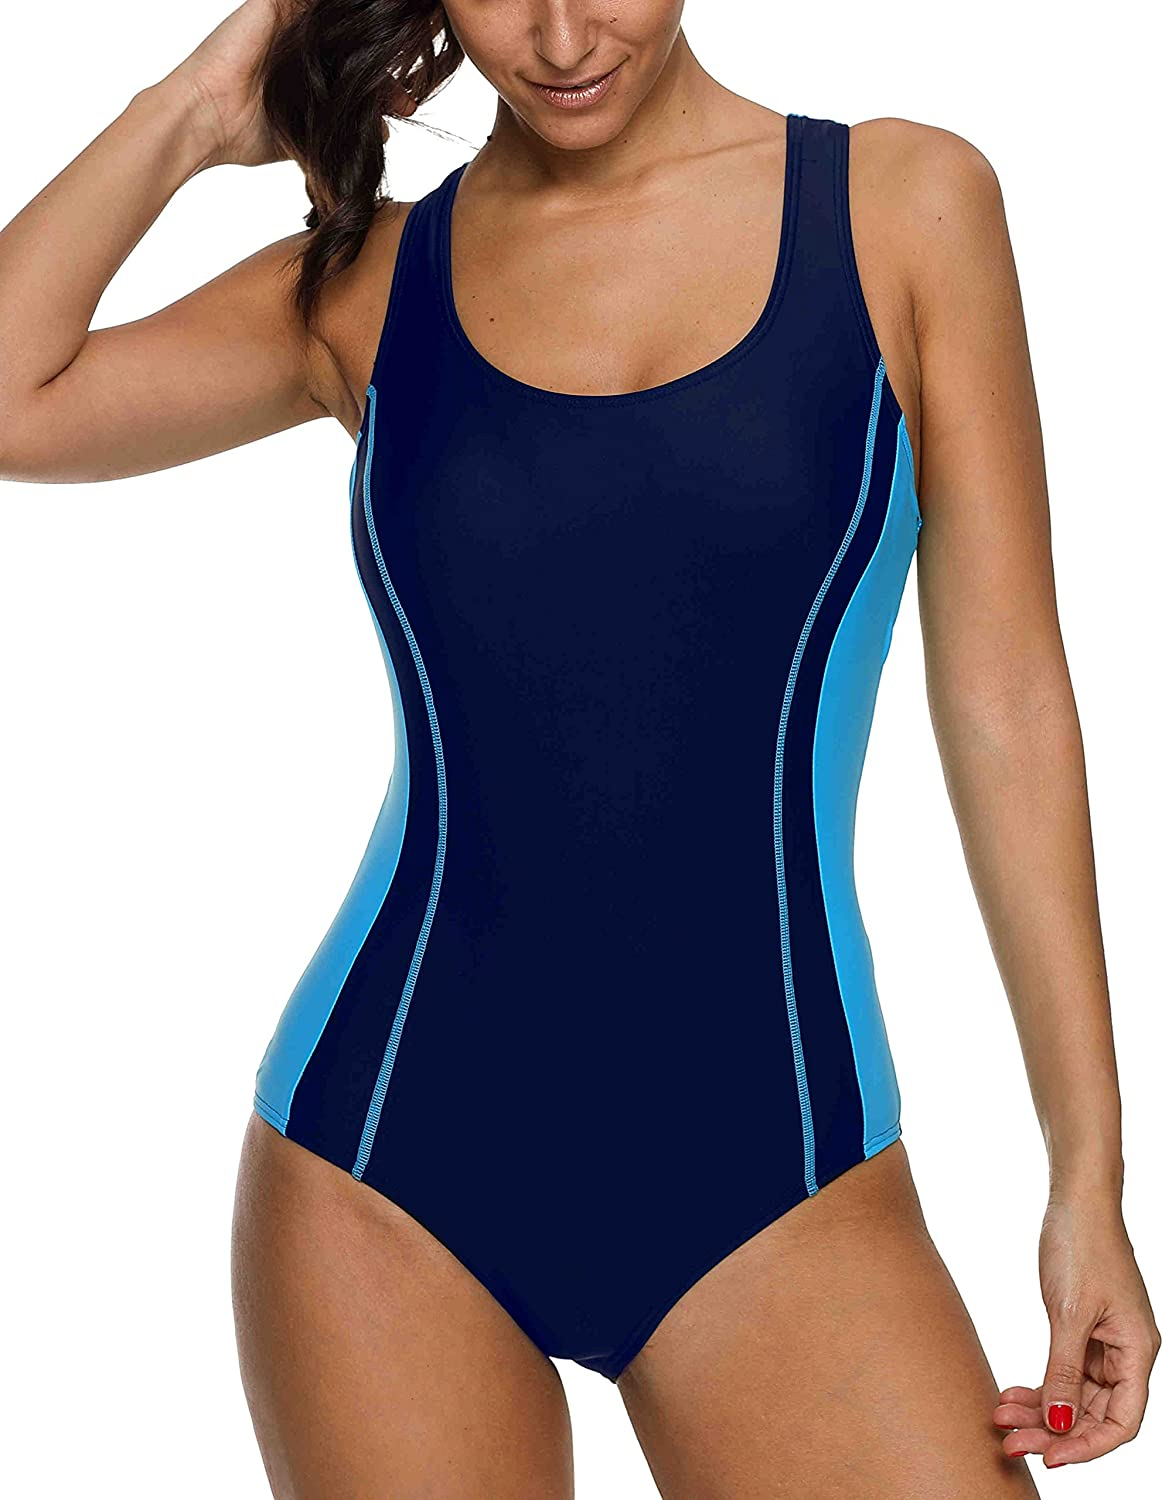 beautyin Women's One Piece Athletic Racerback Swimsuit Slimming Bathing Suit